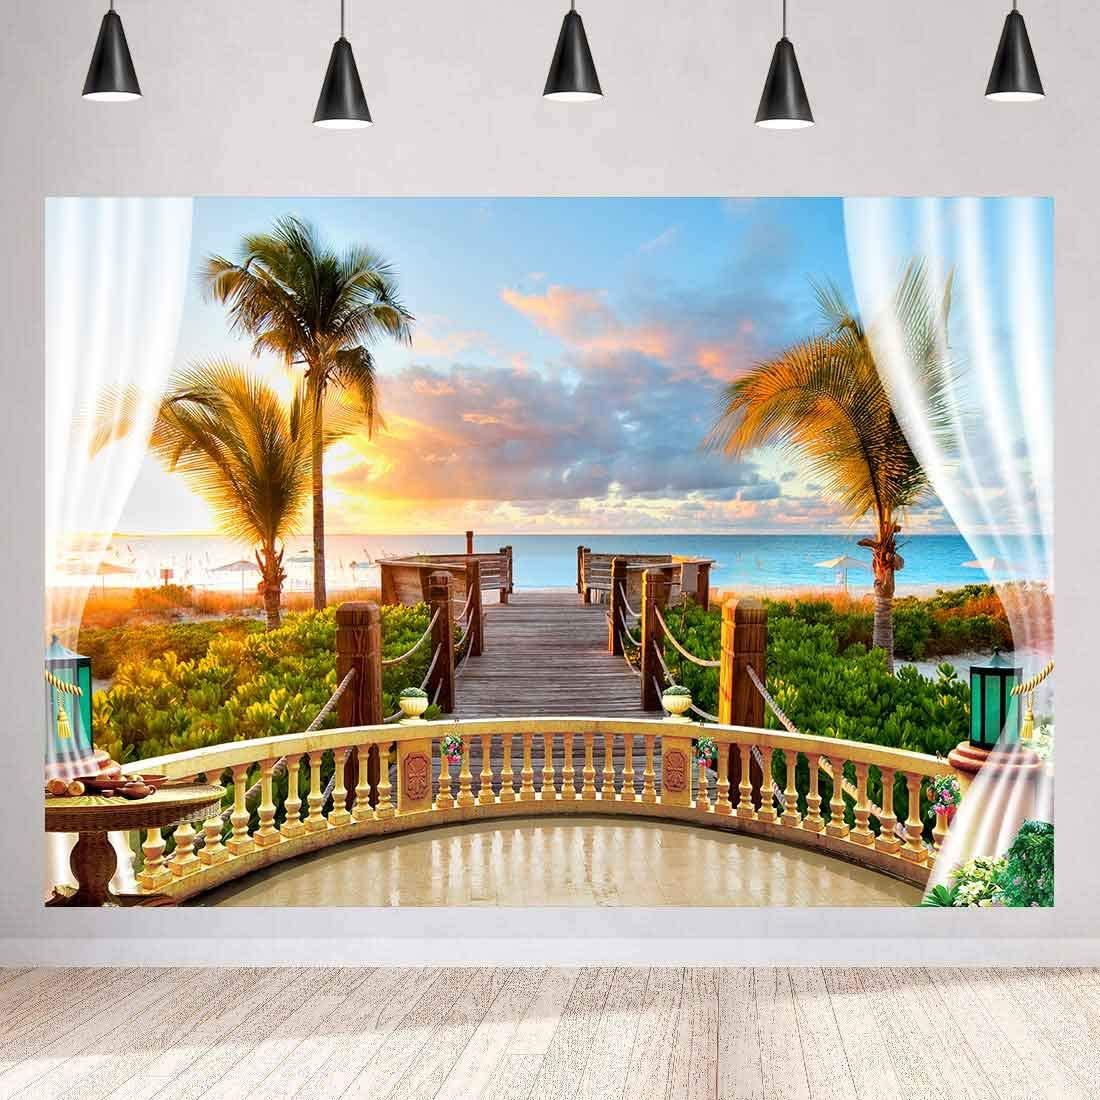 MEETSIOY Seaside Scenery Backdrop Wooden Bridge Railing Plant Sunset Sea Background Wedding Photography Ocean Theme Party Studio Props Background 10x7ft HUIMT072